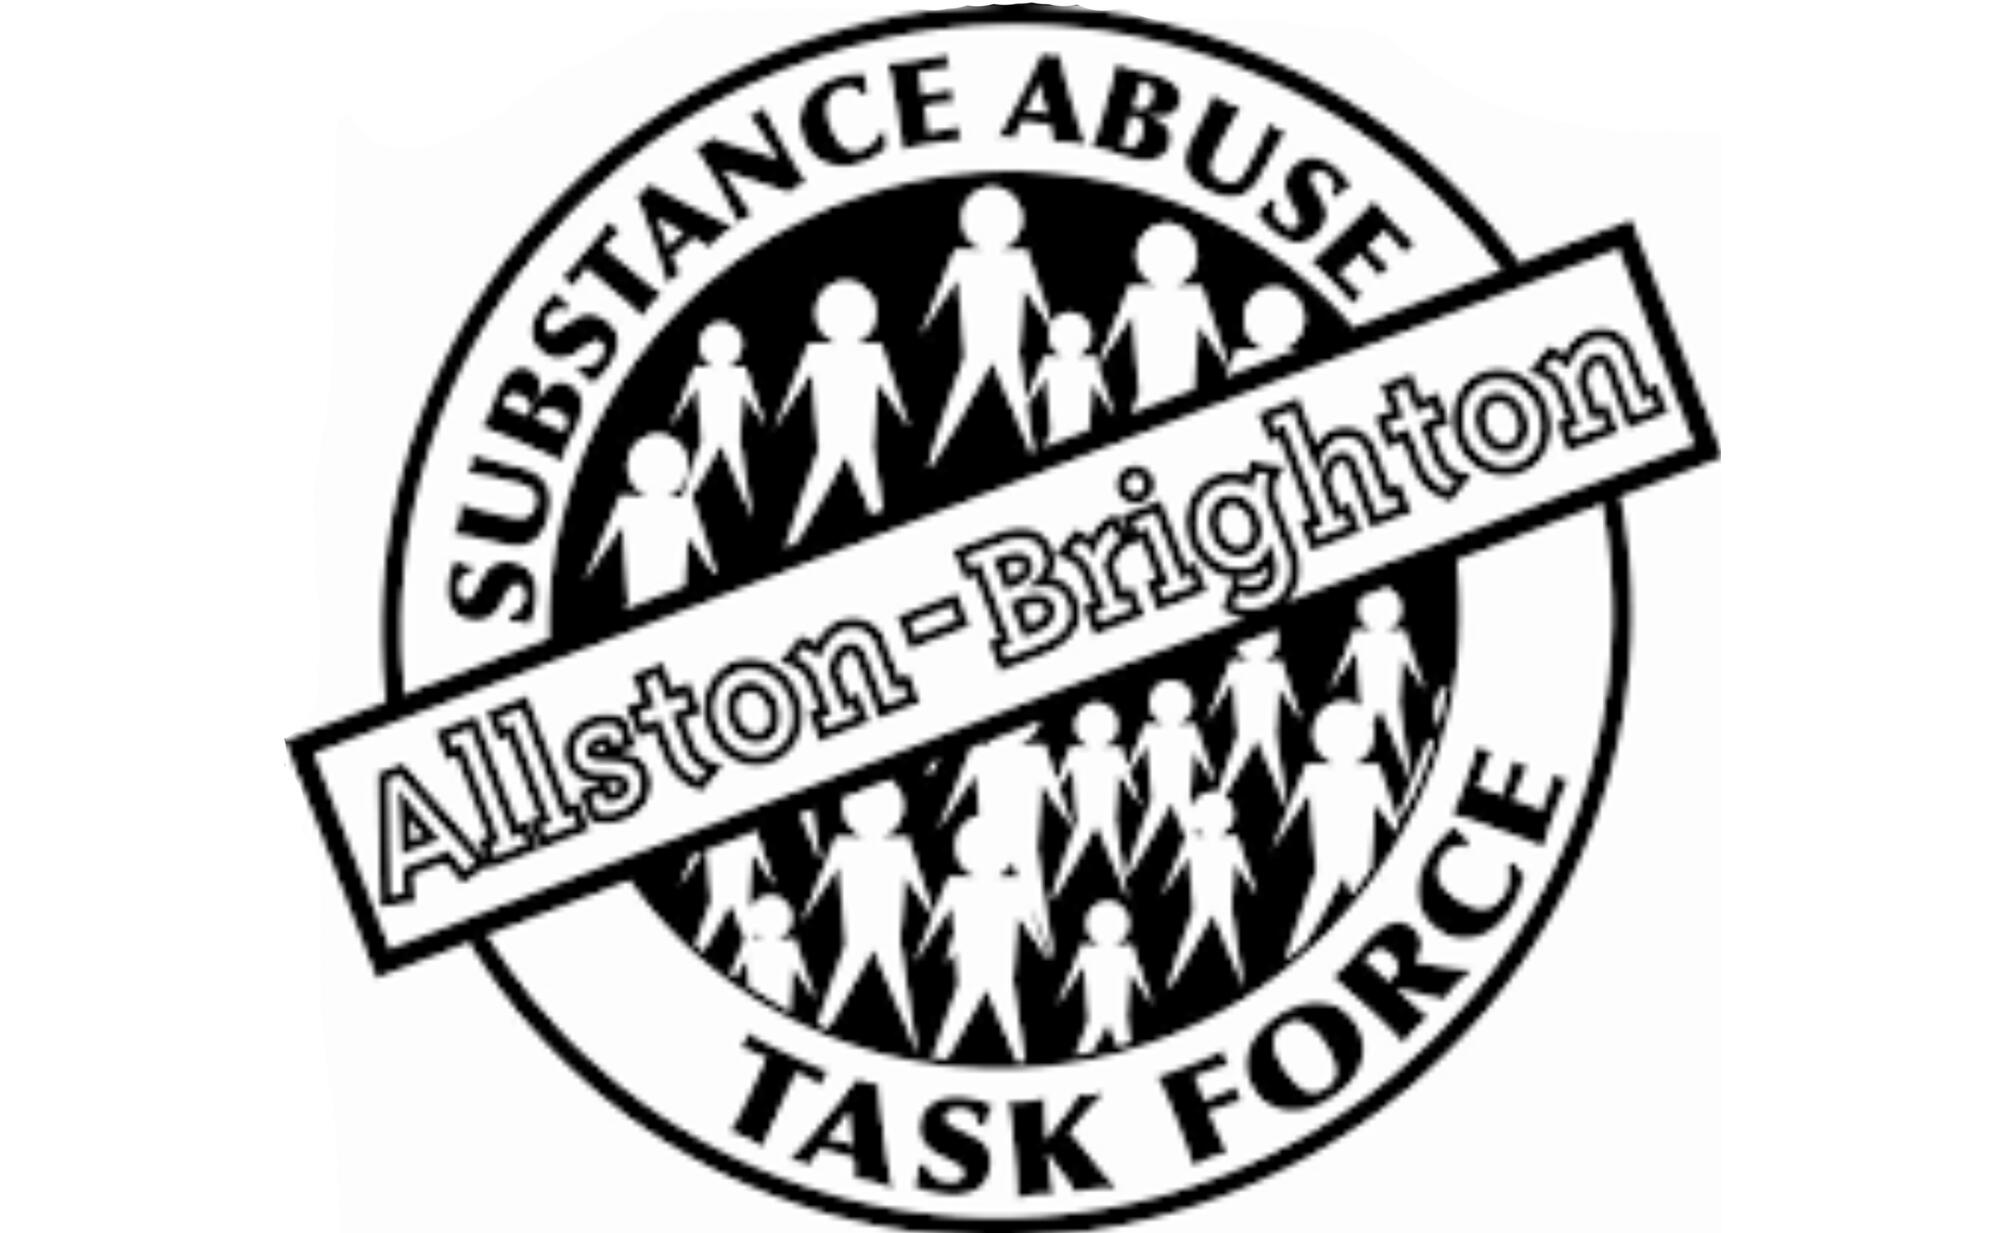 Allston-Brighton Substance Abuse Task Force Logo